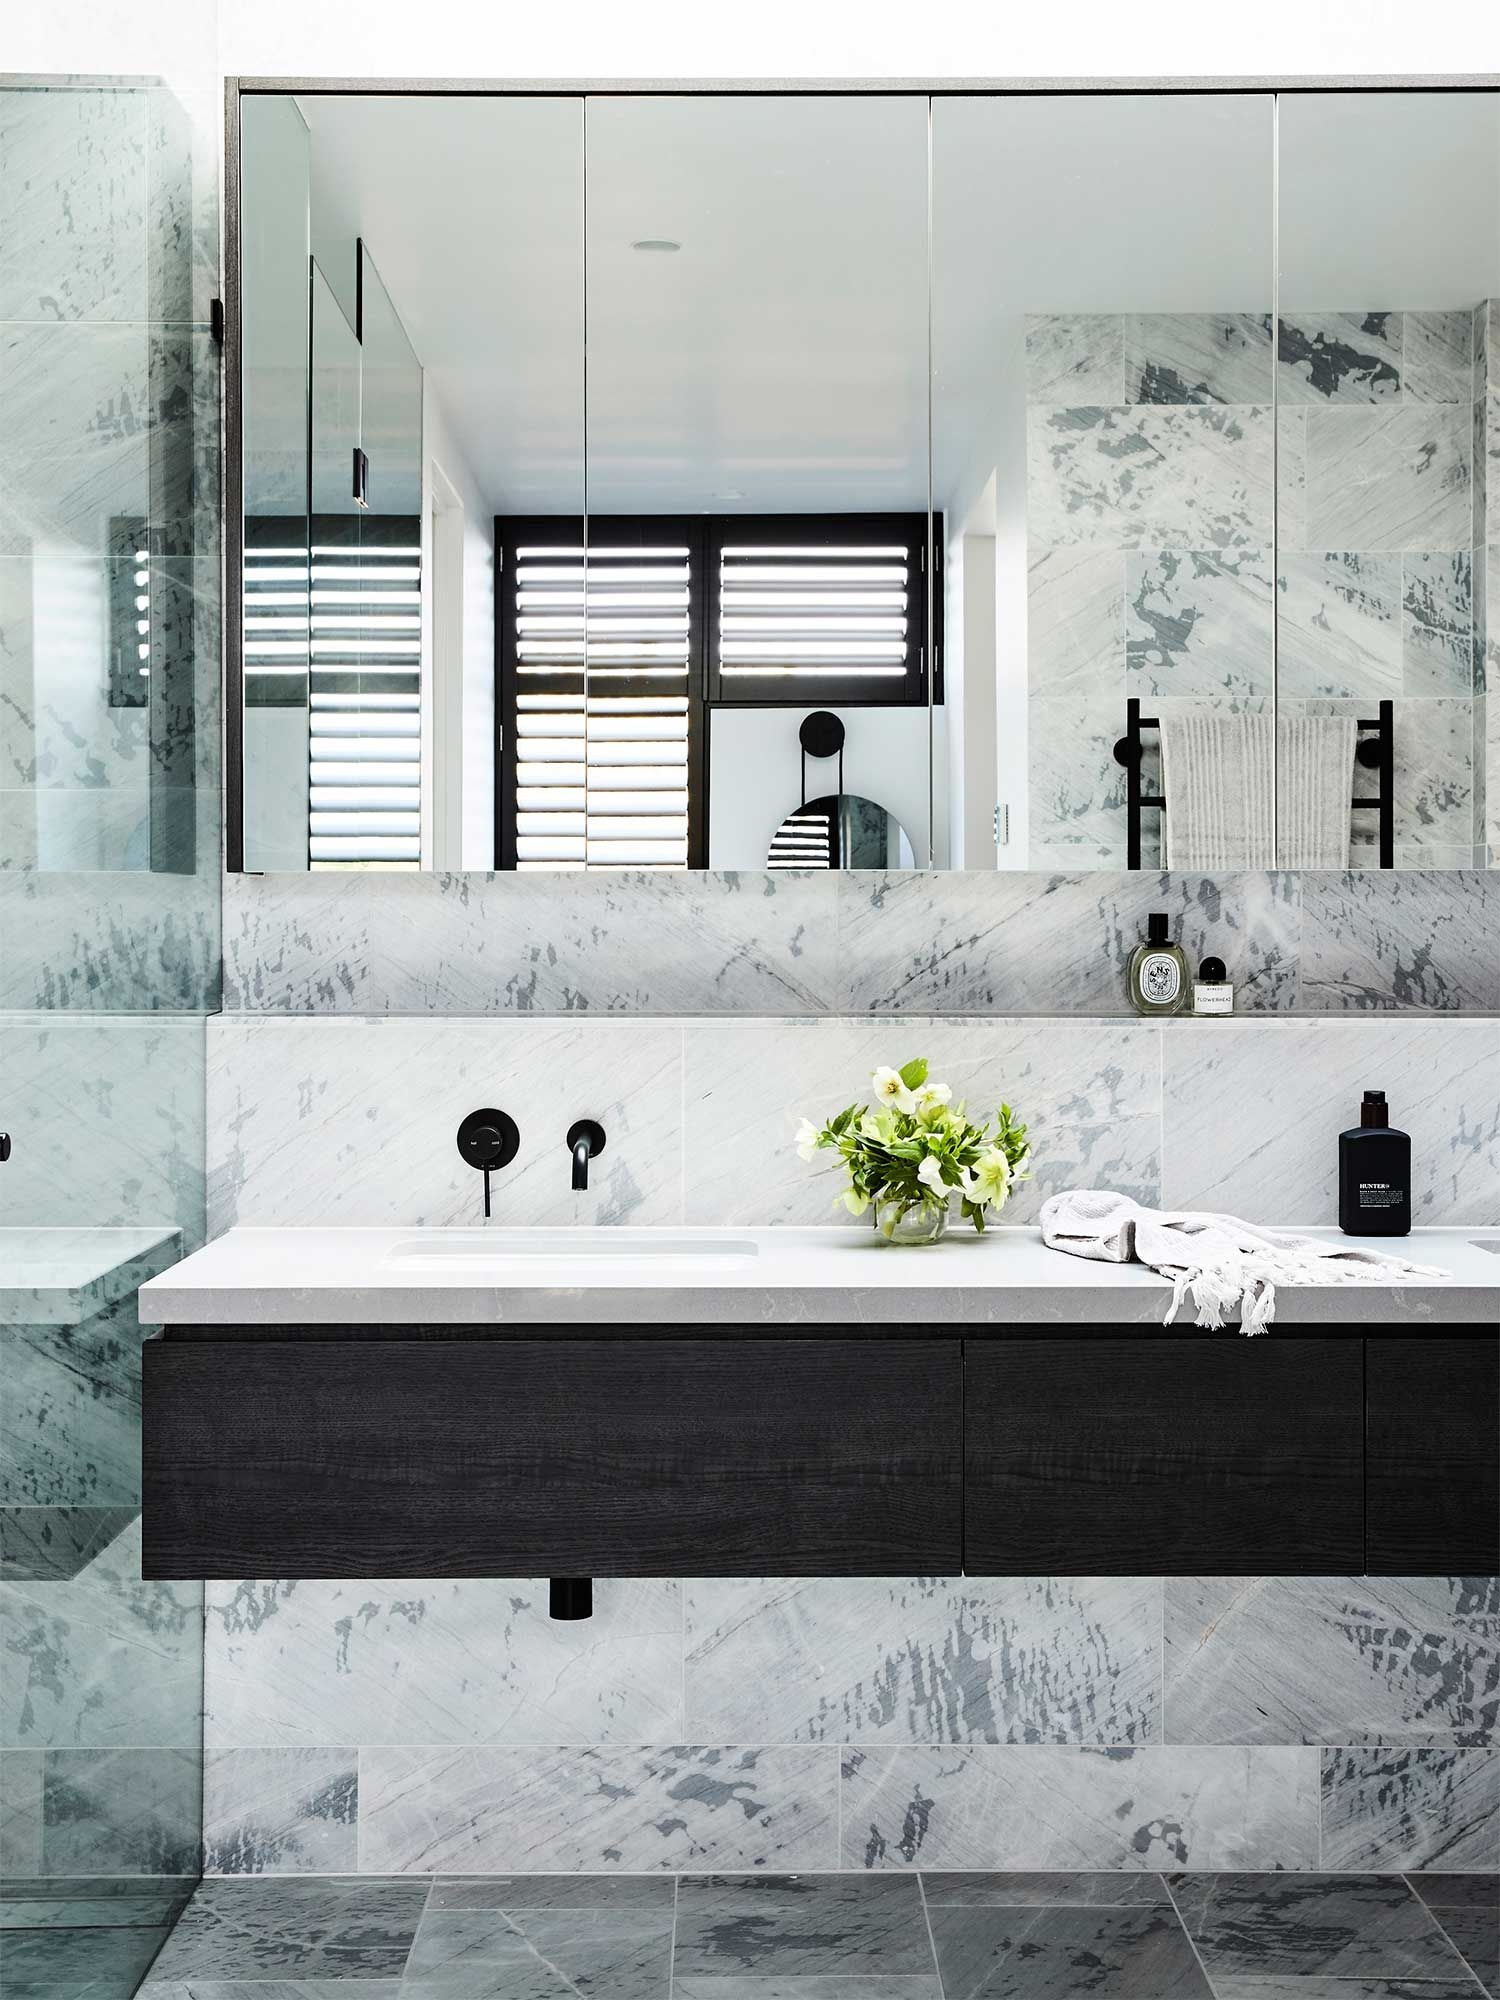 Top Bathroom Trends 2018  Latest Design Ideas  Inspiration  Realestateau